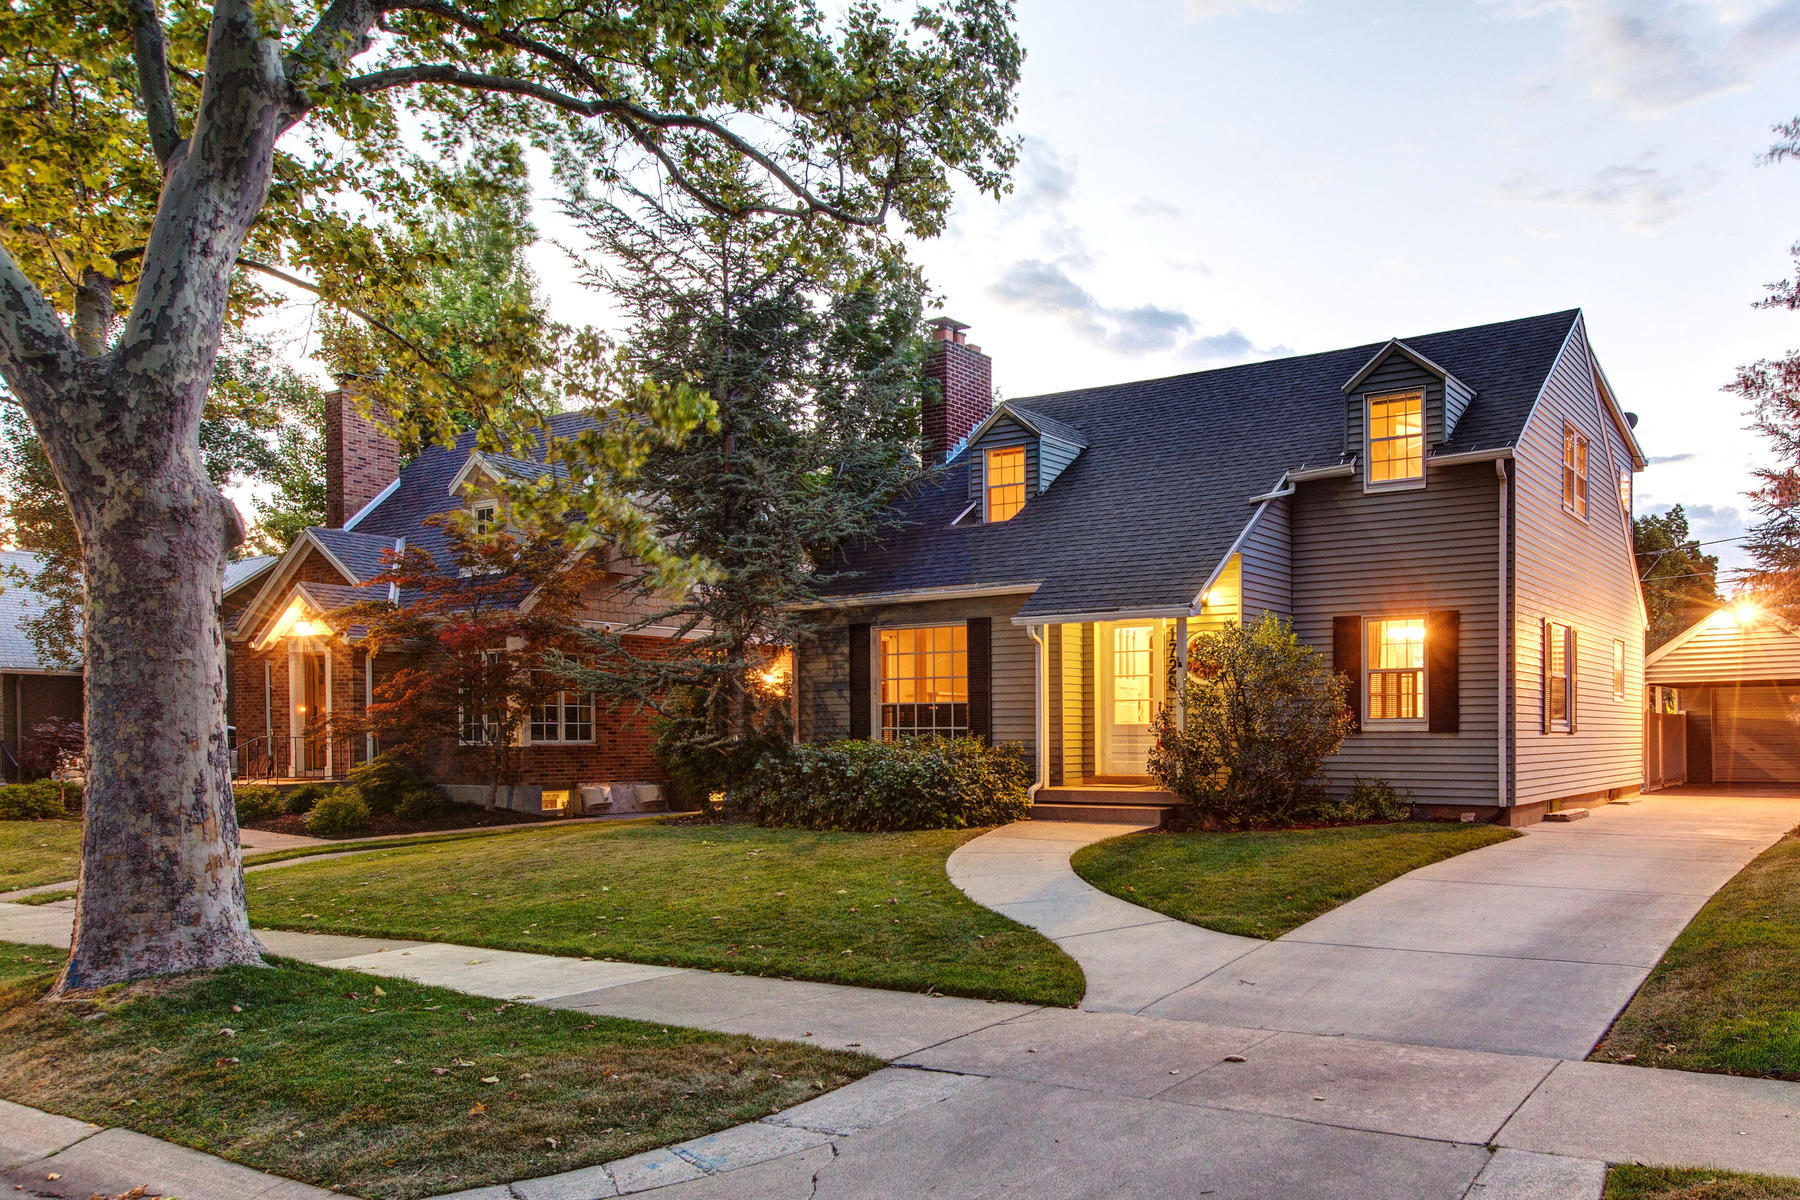 Single Family Home for Sale at One-Of-A-kind Harvard/Yale Cape Cod 1729 Laird Ave Salt Lake City, Utah, 84108 United States